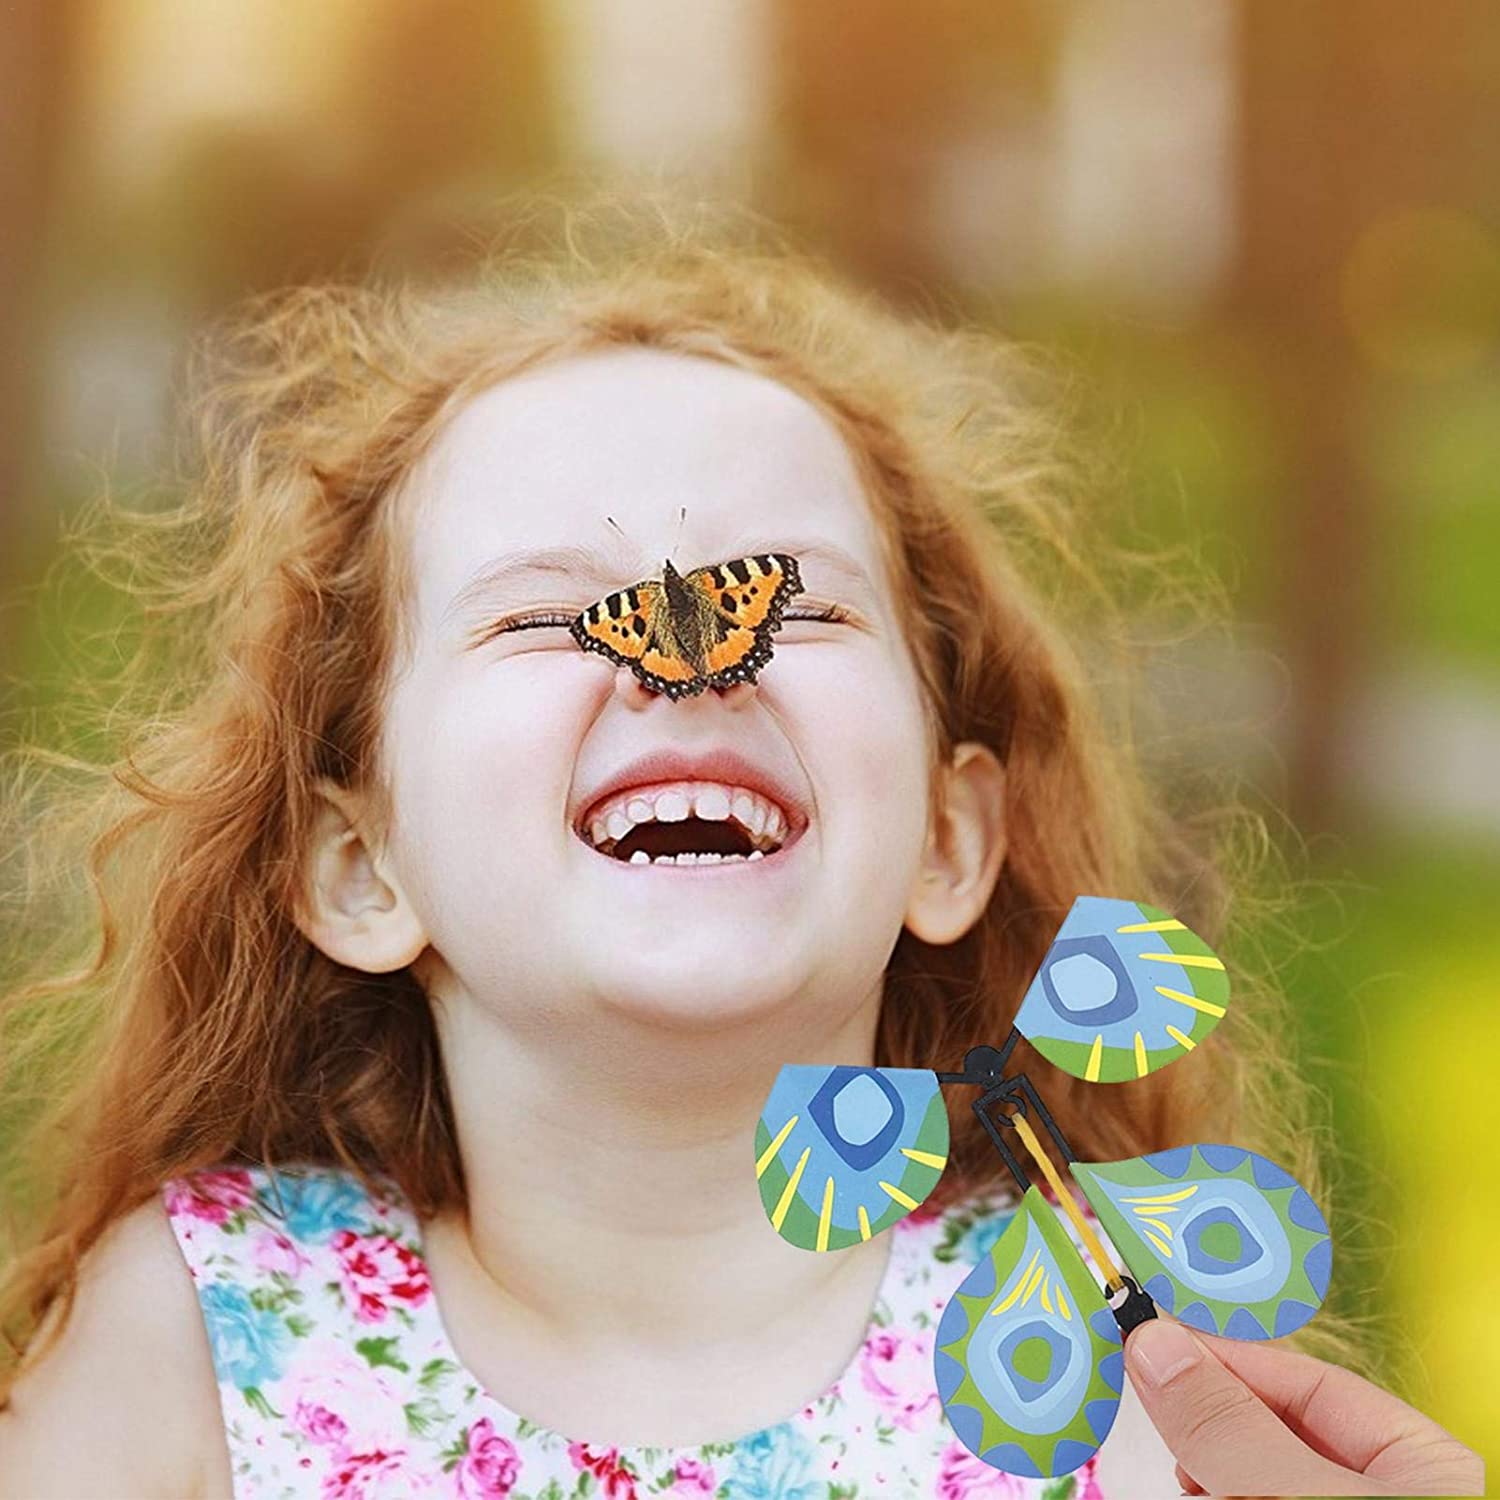 Pupa Into Butterfly Magic Flying Butterfly Rubber Band Power Spring Free Butterfly Butterfly Toy Childrens Magic Prop Toy Flying Butterfly